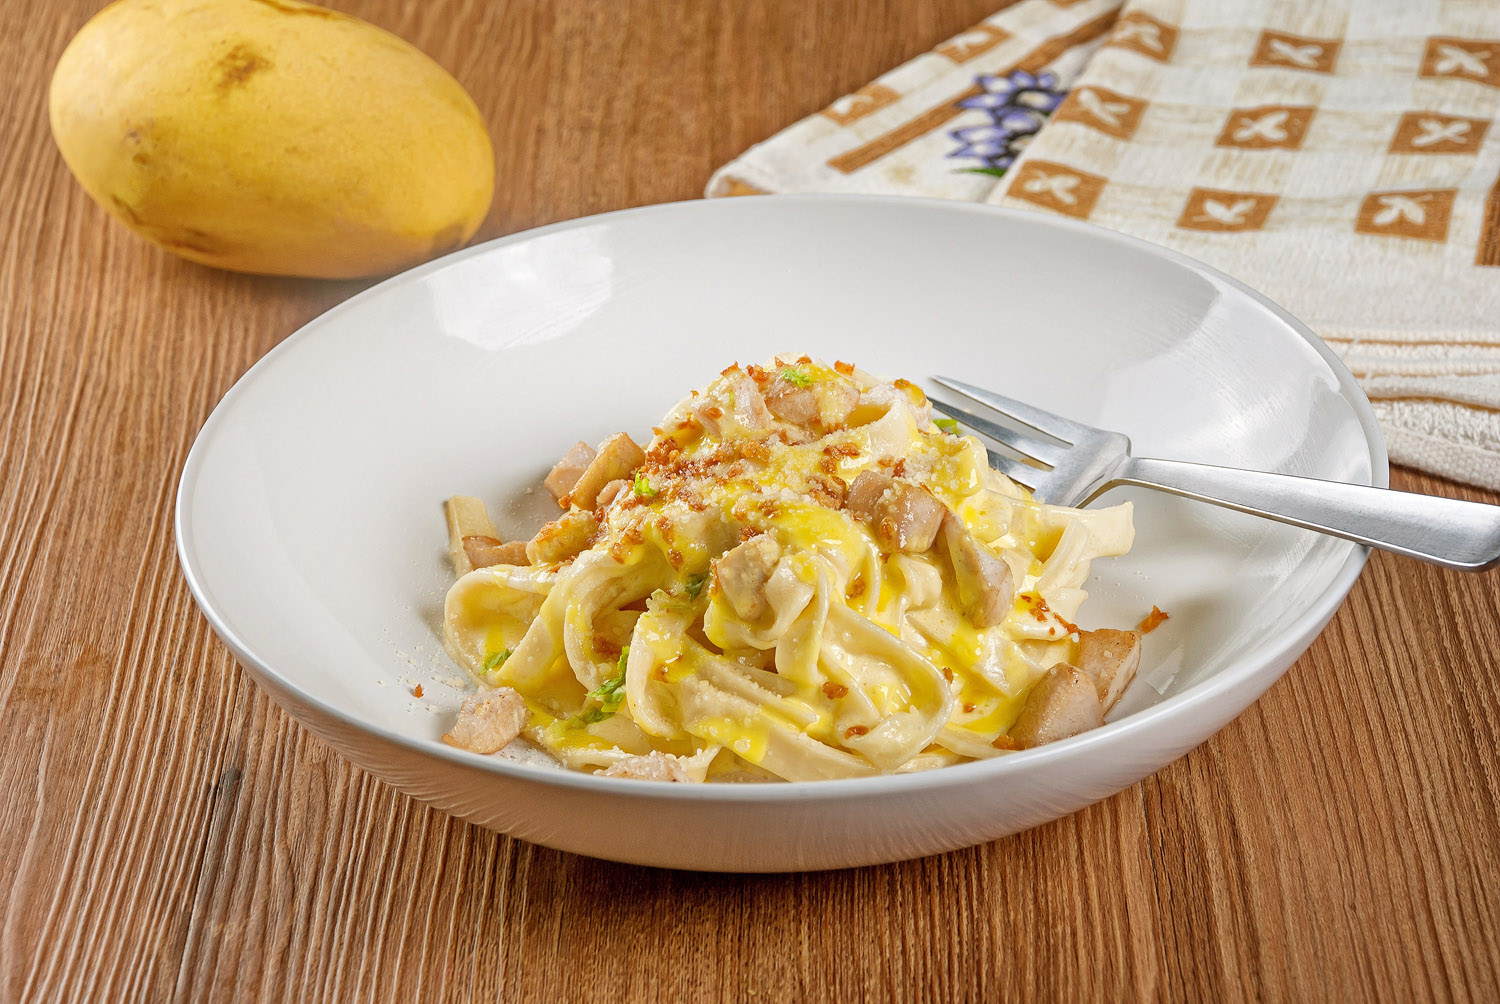 Fettuccine in Mango Alfredo with Chicken and Garlic